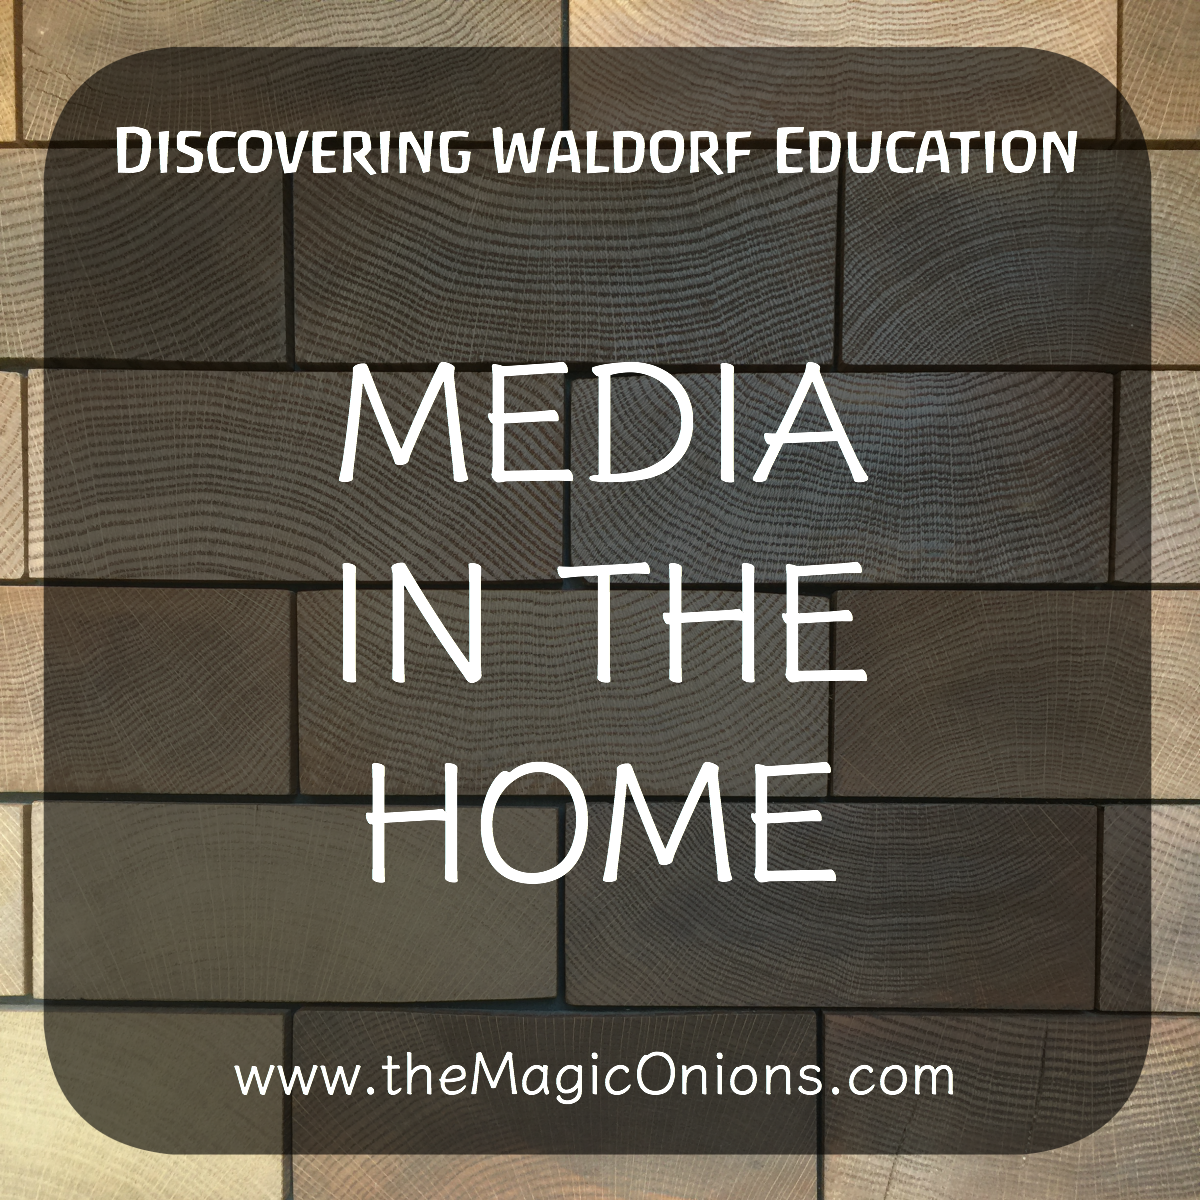 The Role of Media in the Waldorf Home article from The Magic Onions